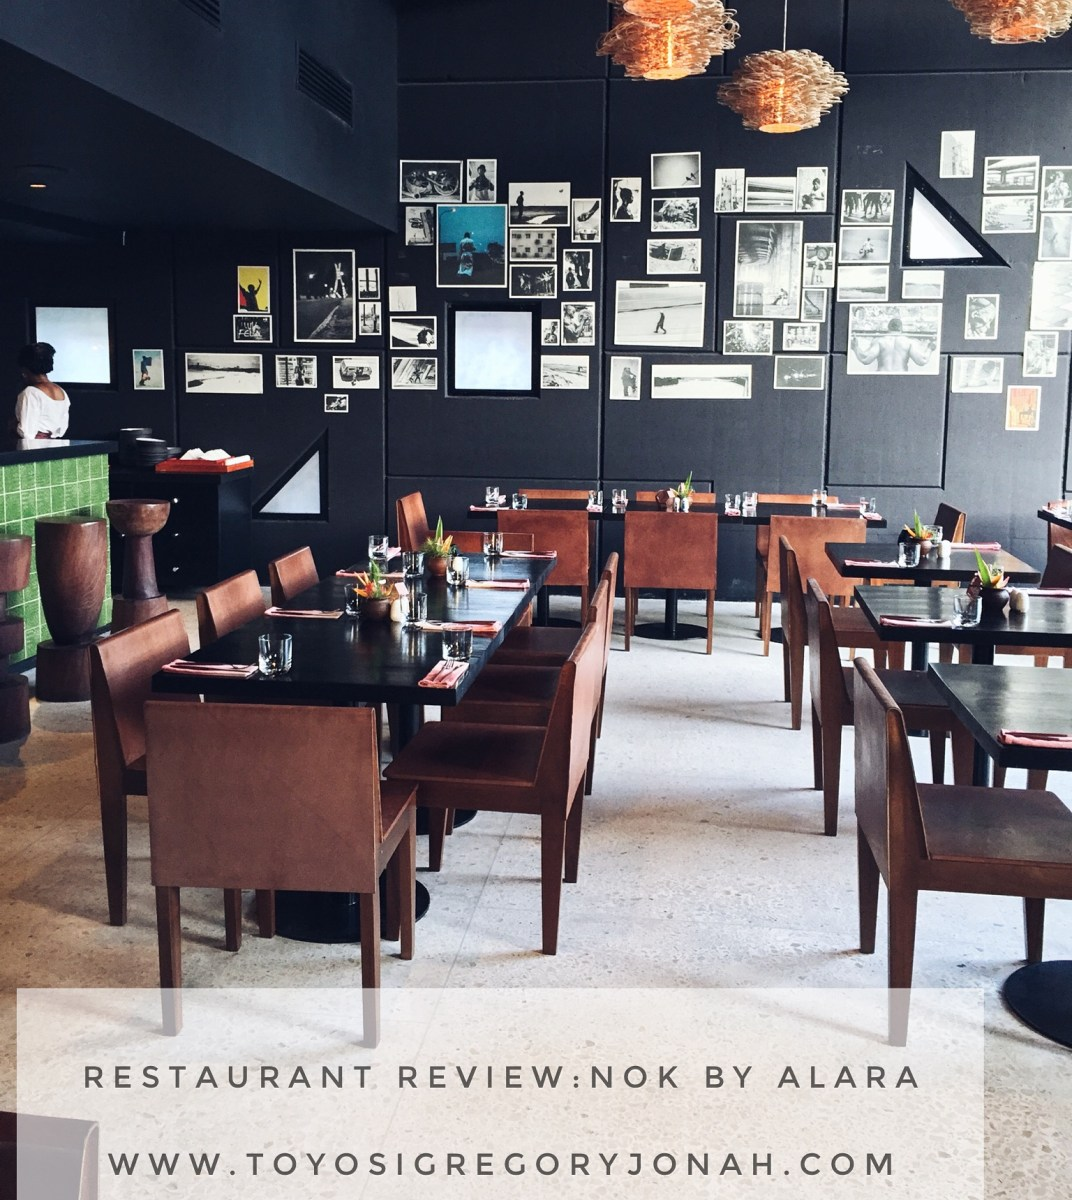 RESTAURANT REVIEW || NOK by ALARA